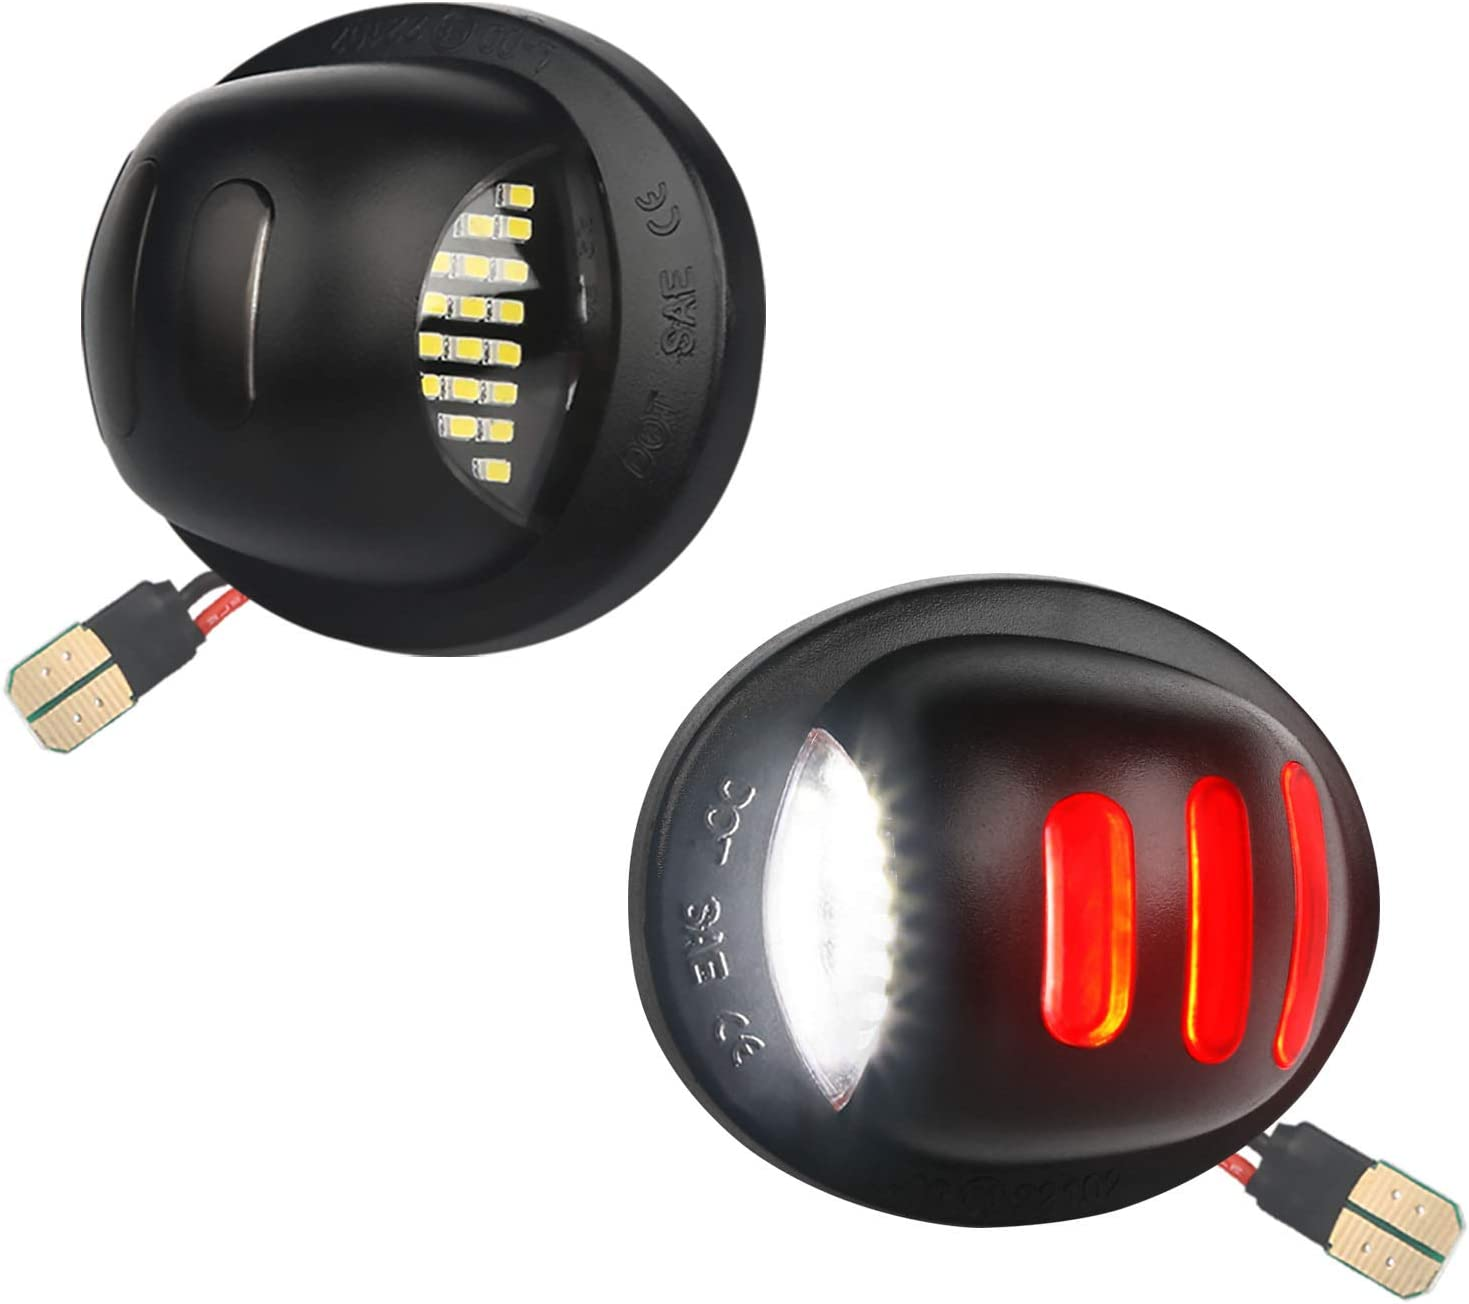 MbuyDIY LED License Plate Light Lamp OLED Neon with Surprise price free shipping Red Assembly